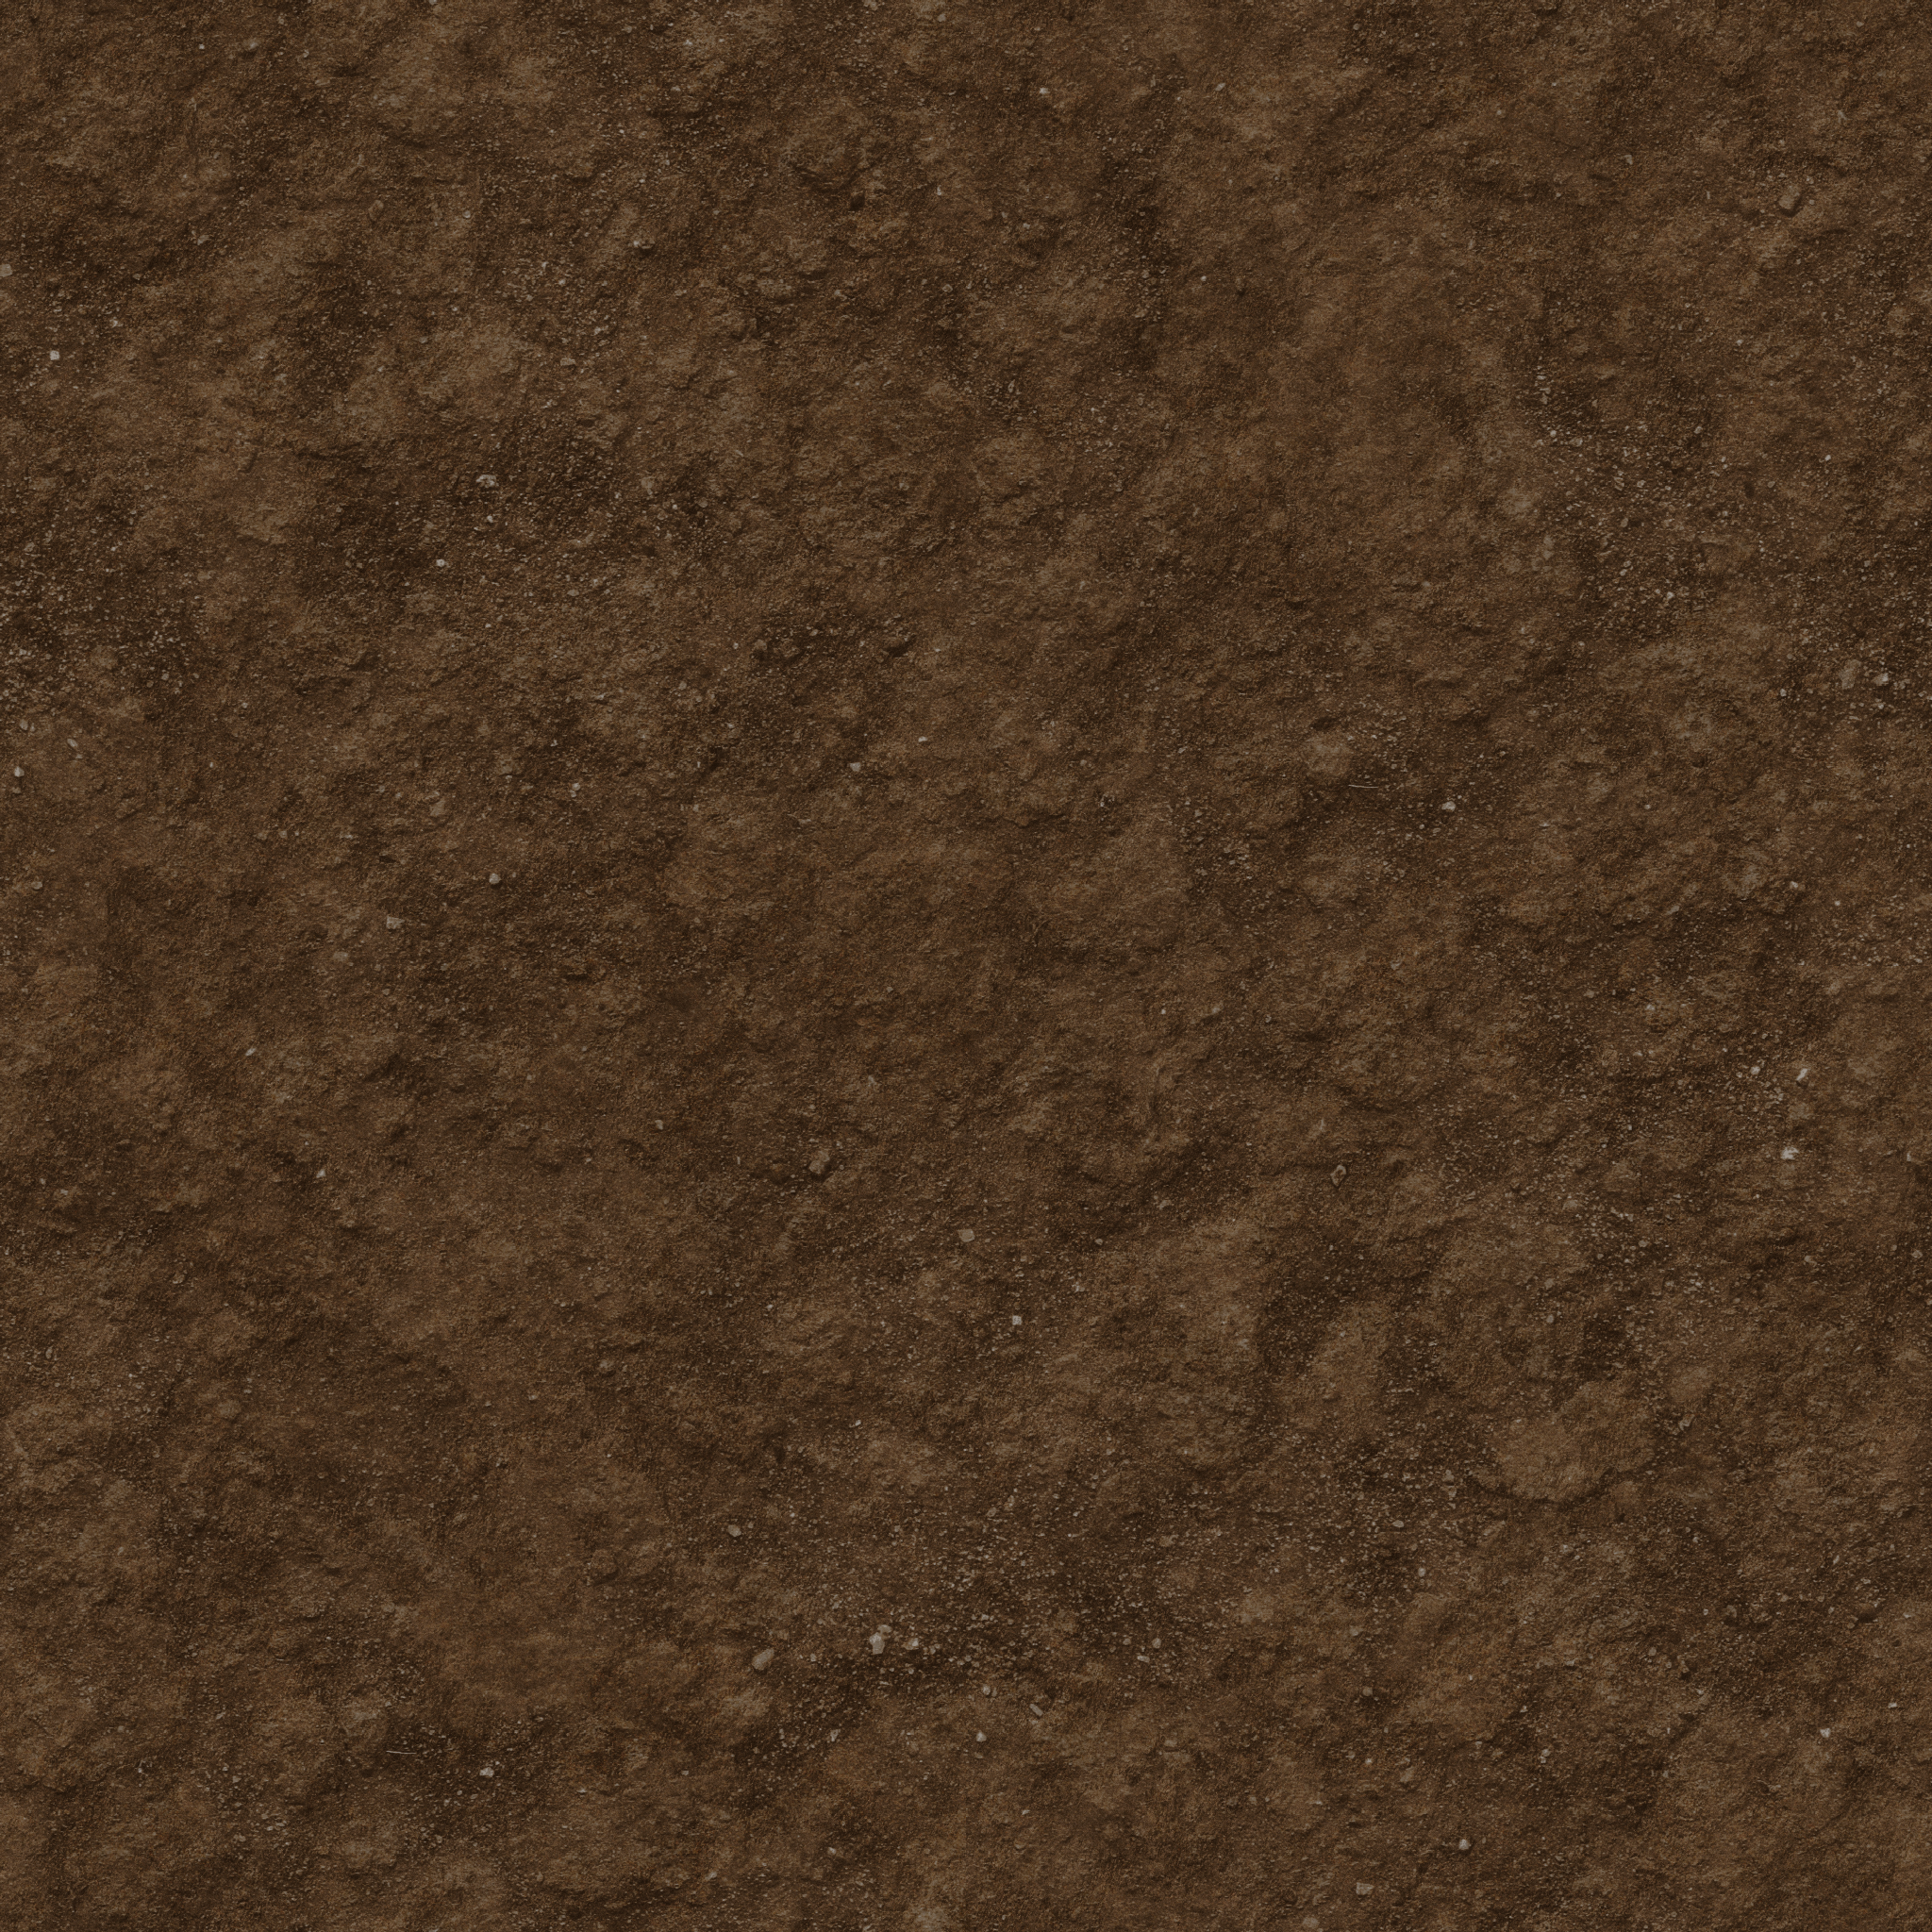 Dirt/Ground Texture [Tileable | - 9457.5KB